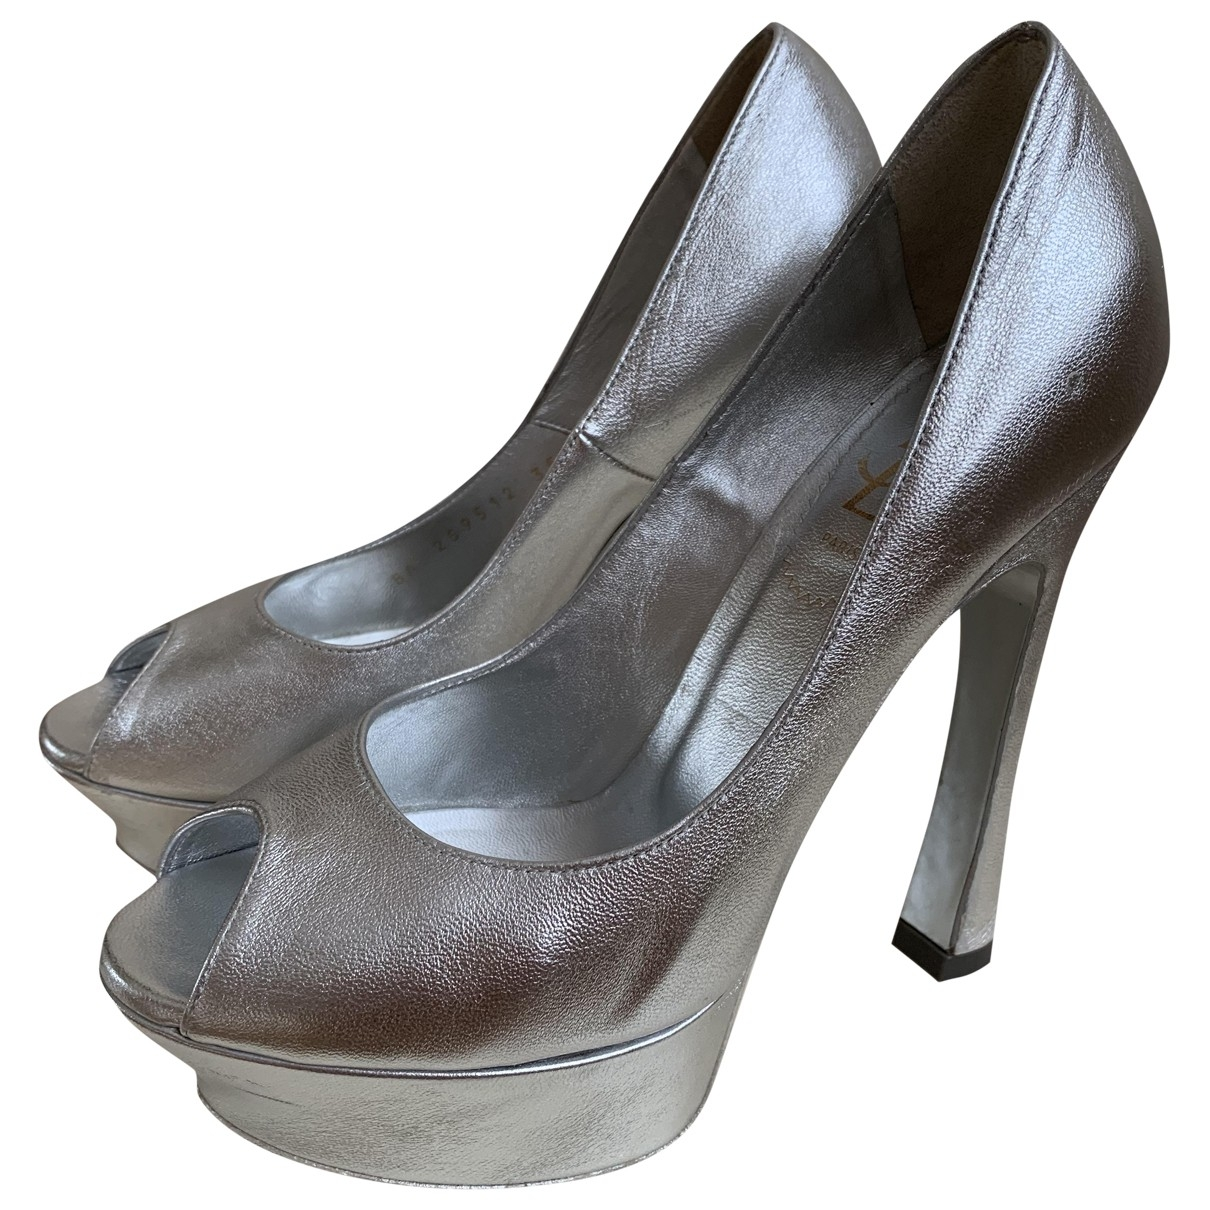 Yves Saint Laurent Palais Silver Leather Heels for Women 35.5 EU